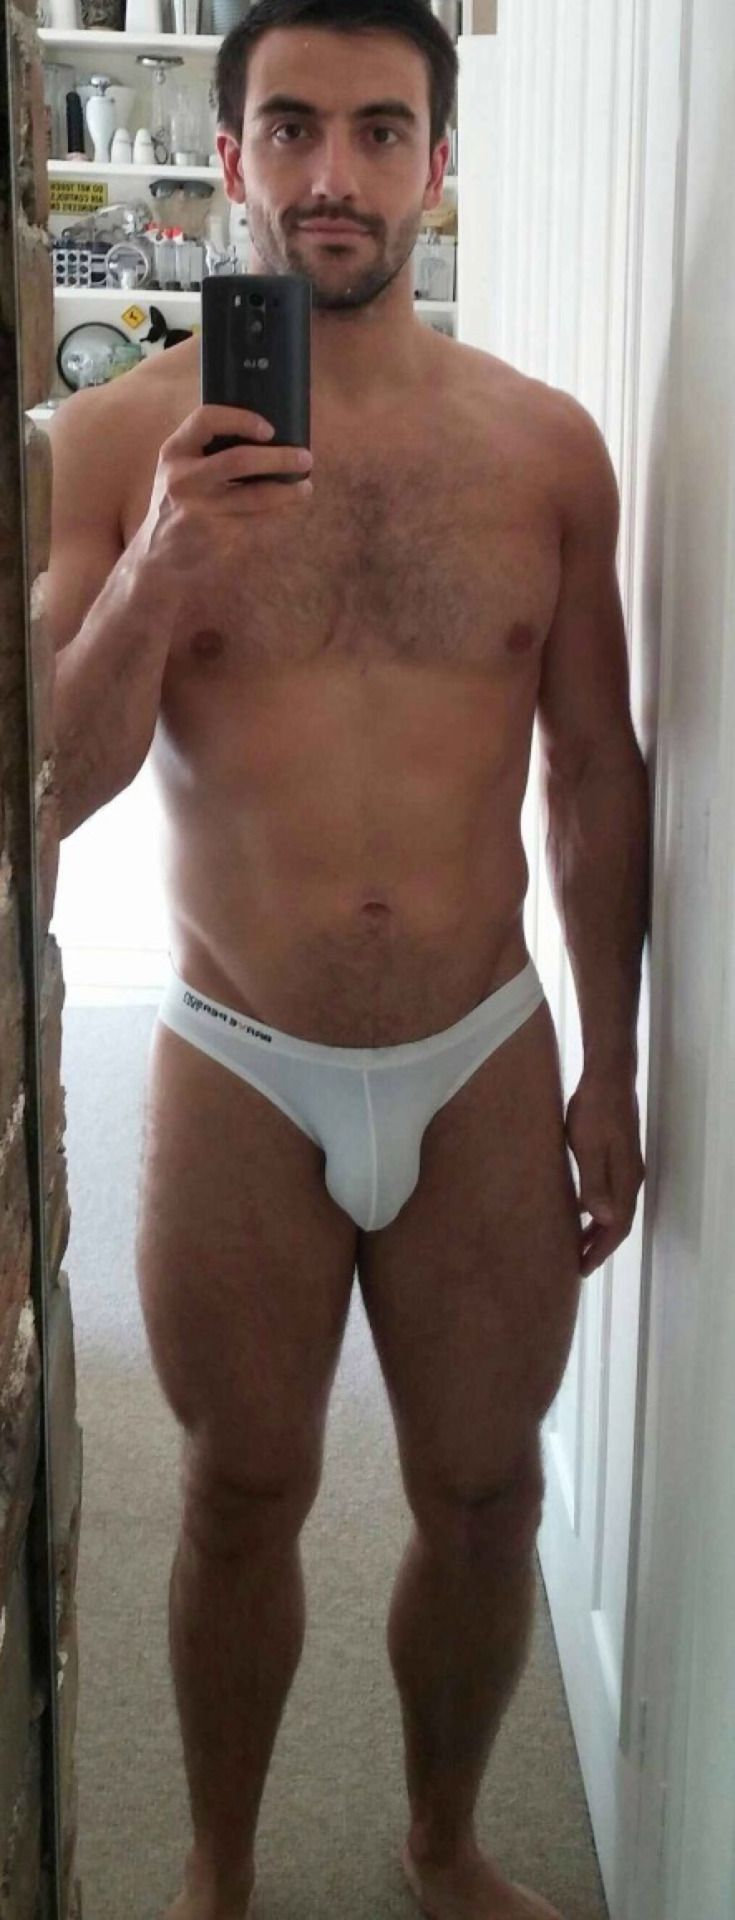 Gay Interest The Male Figure Vol1 Male Semi Nudes 6x4 Beefcake Bruce of LA Photo